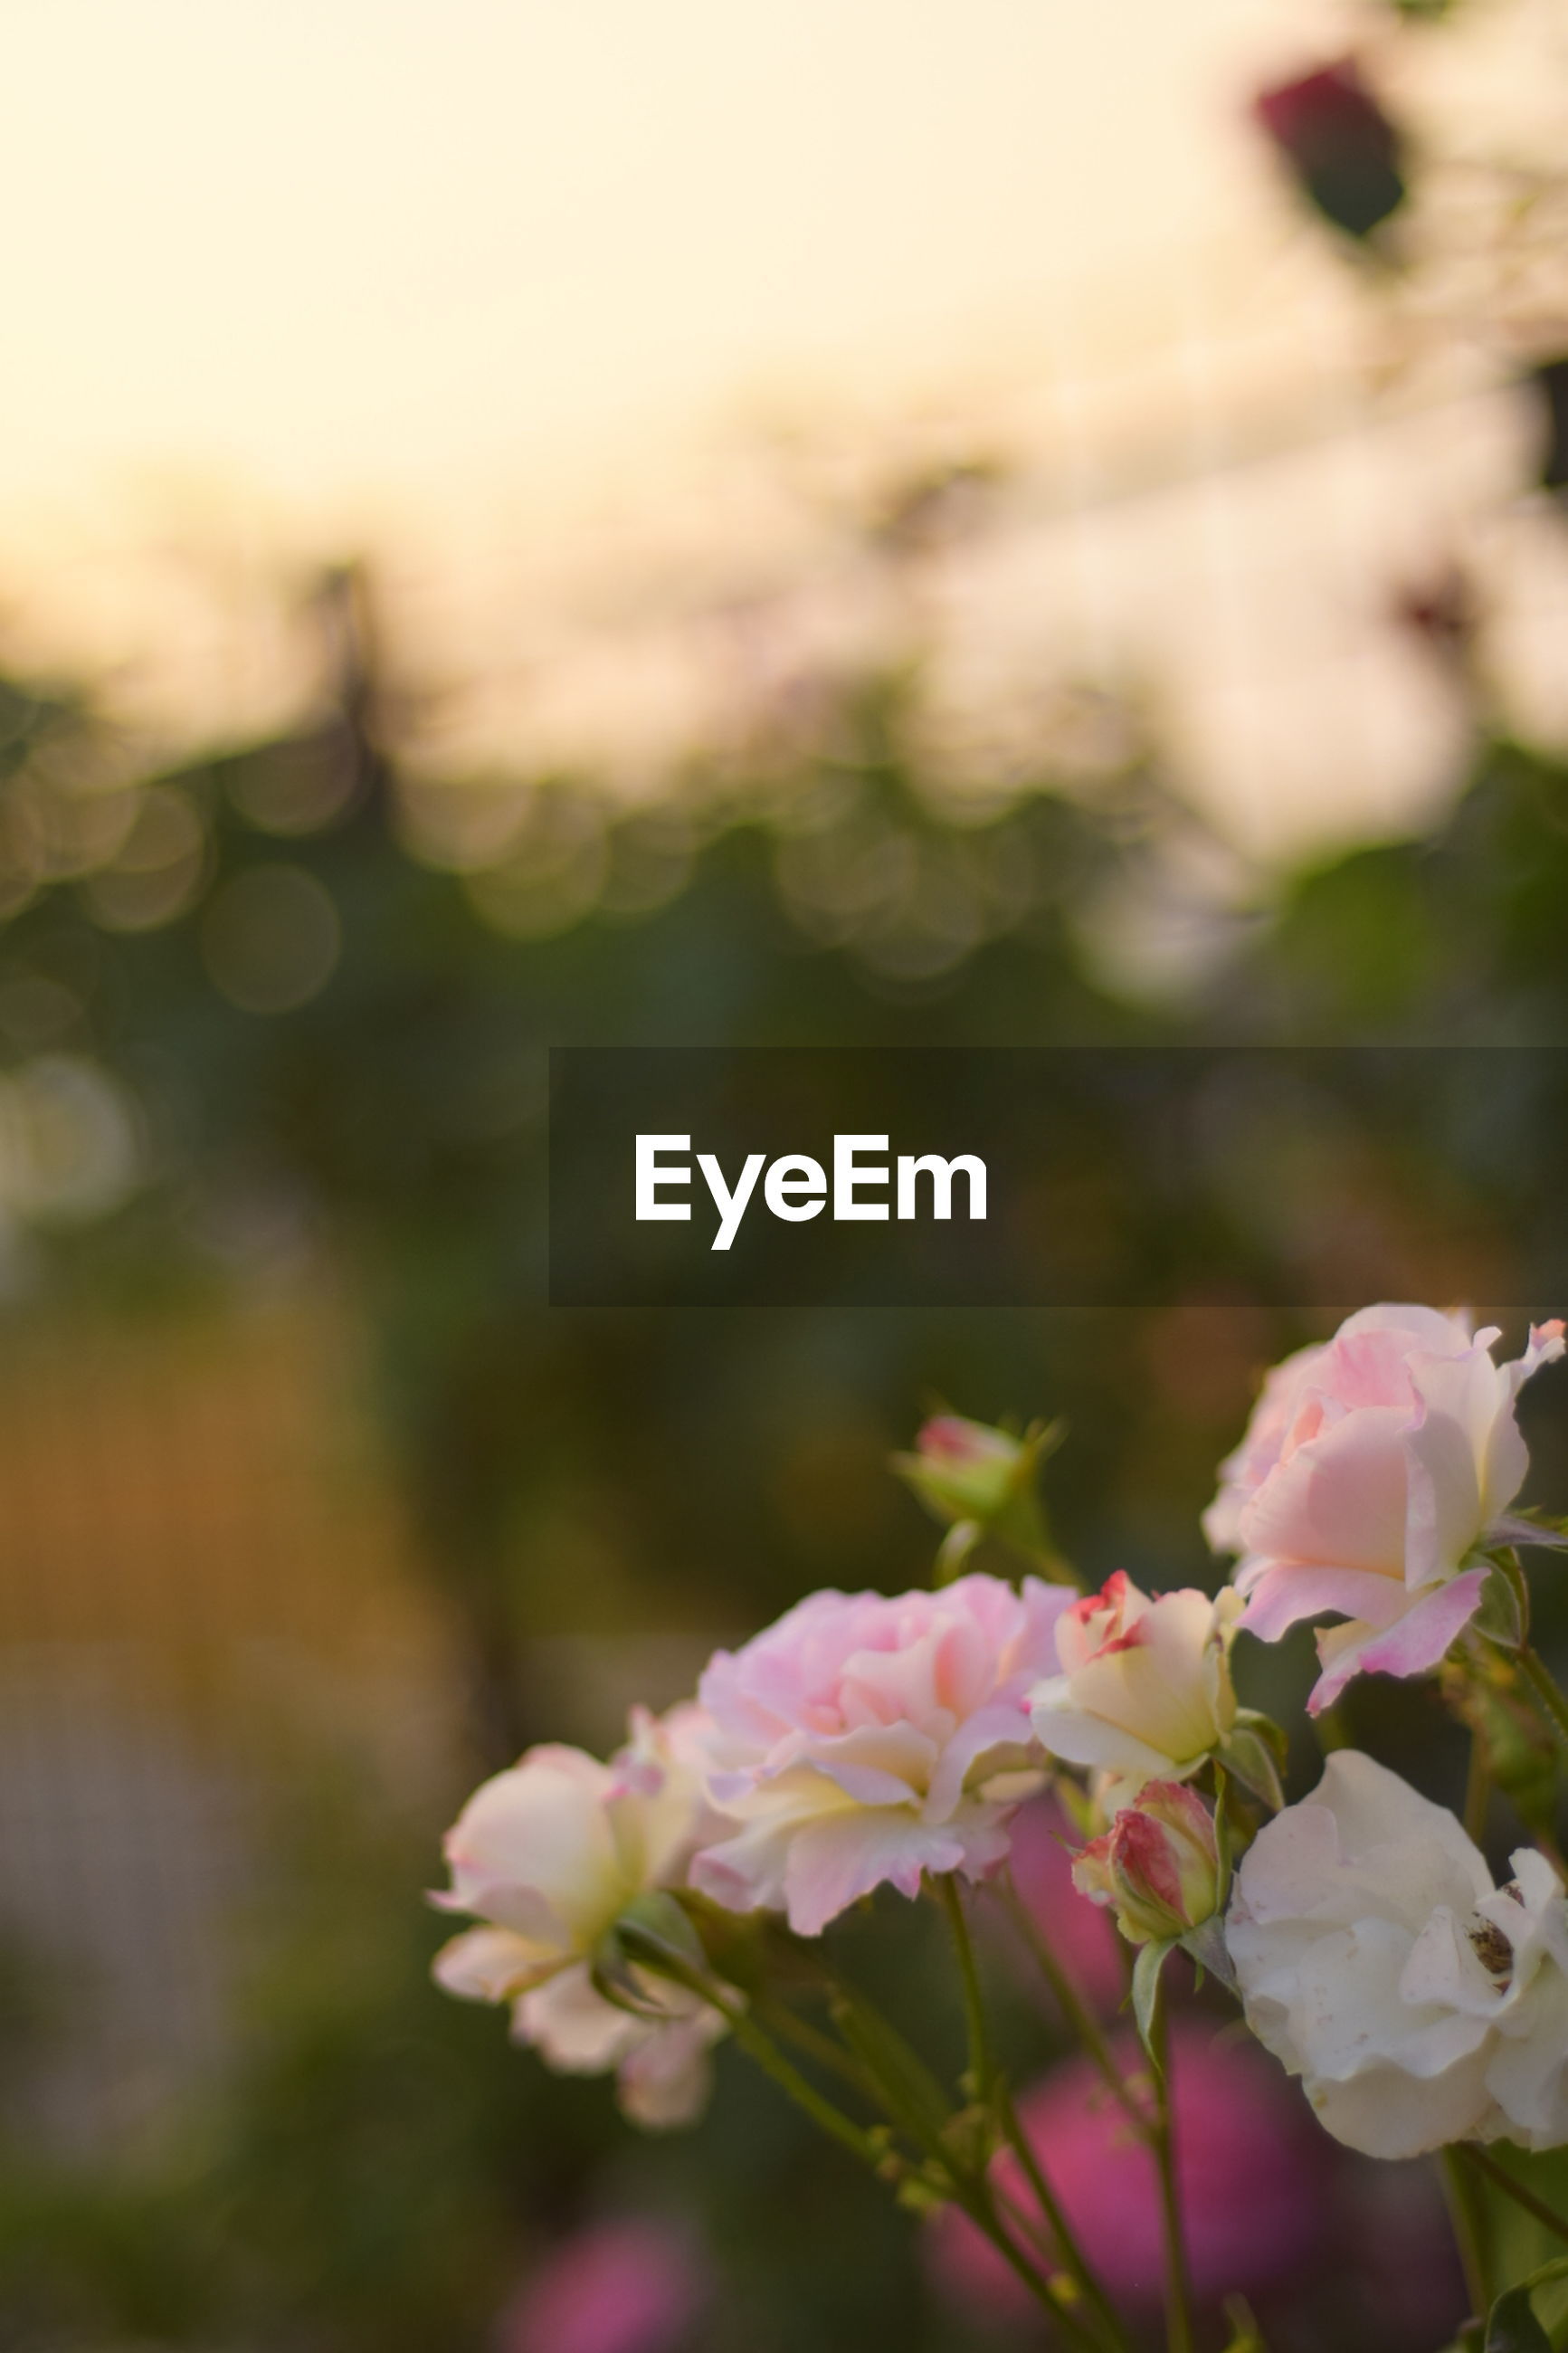 flower, petal, freshness, fragility, focus on foreground, growth, pink color, flower head, beauty in nature, close-up, blooming, nature, plant, in bloom, selective focus, park - man made space, blossom, outdoors, day, botany